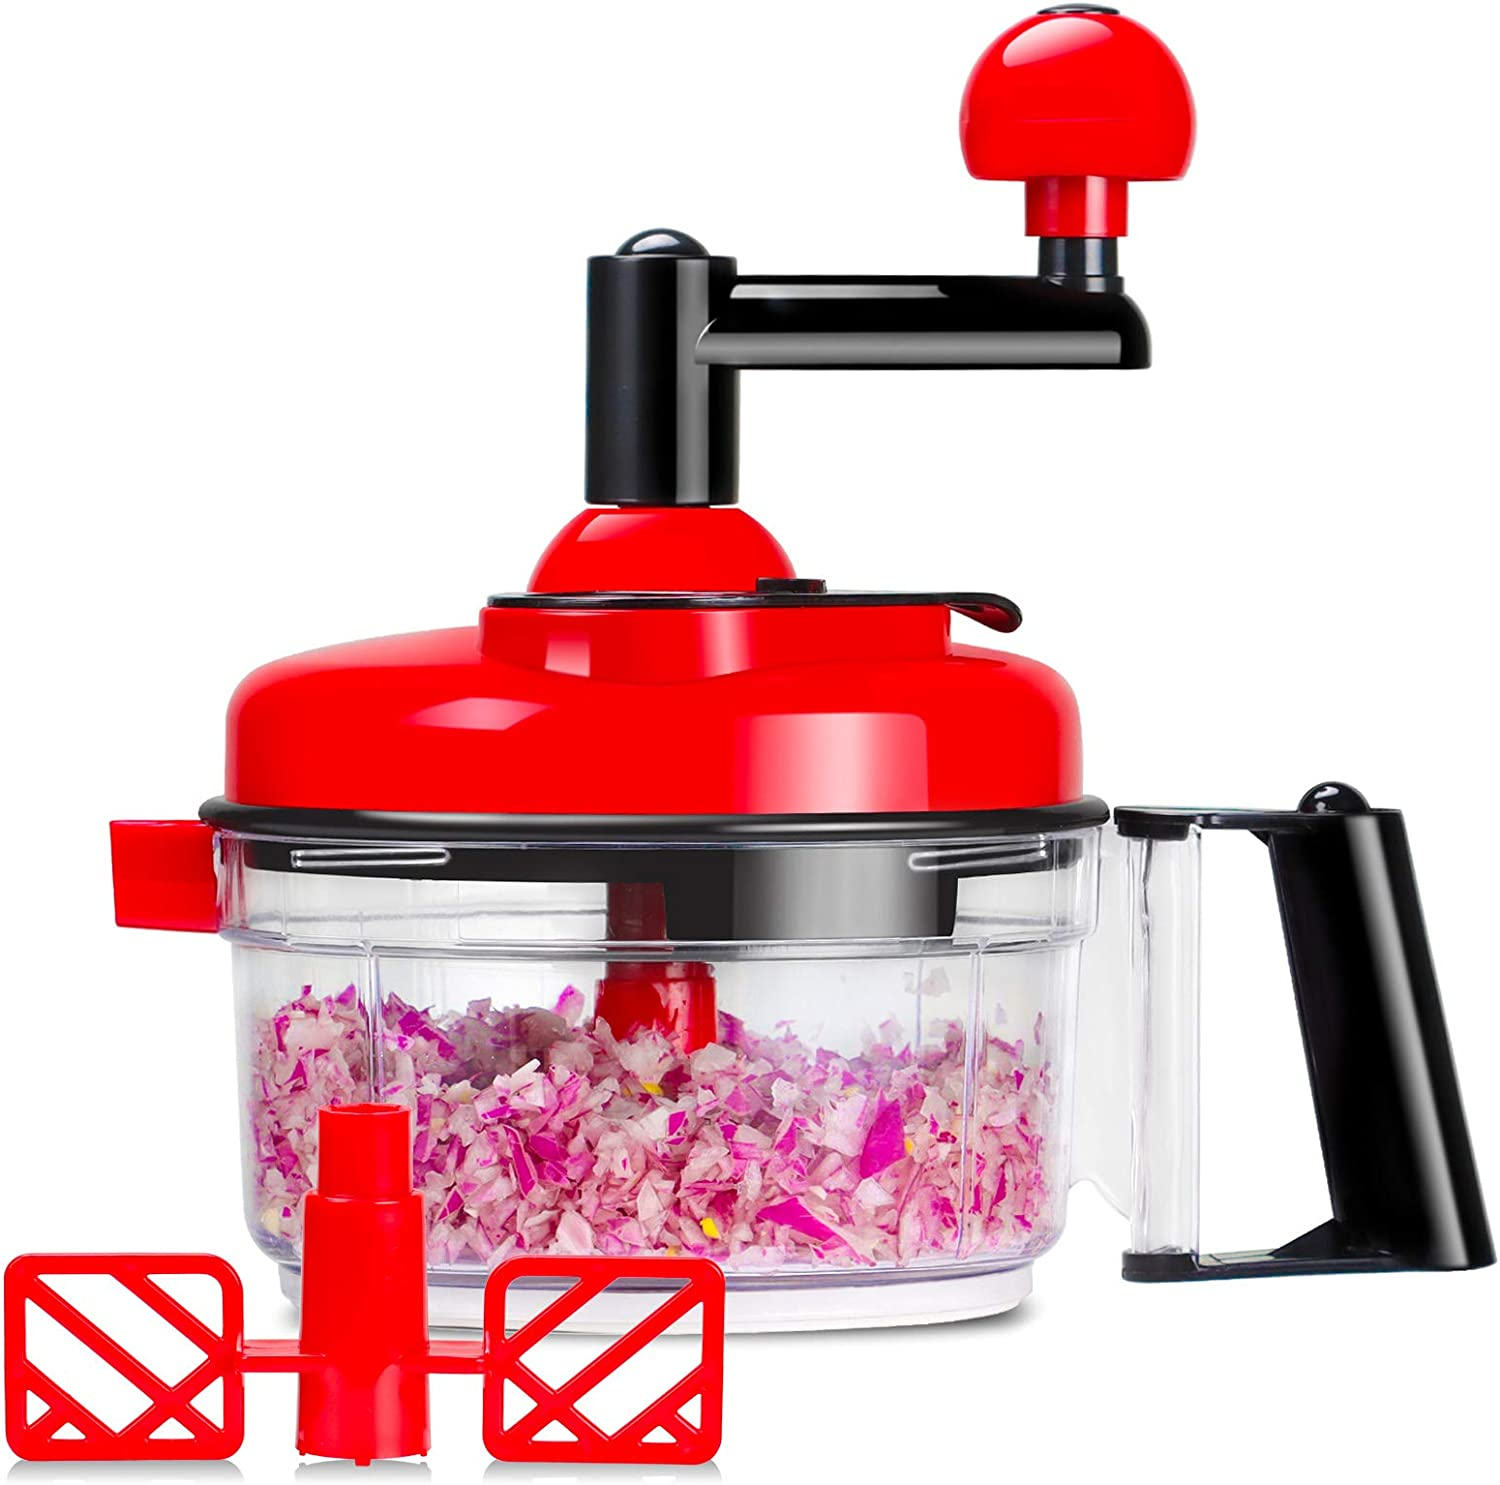 Cambom Manual Food Chopper Vegetable Chopper Hand Food Processor, Mixer, Blender, Whipper, Egg White Separator, Mincer, Grinder, Dicer with Clear Container 1200ml BPA Free Strong and Durable